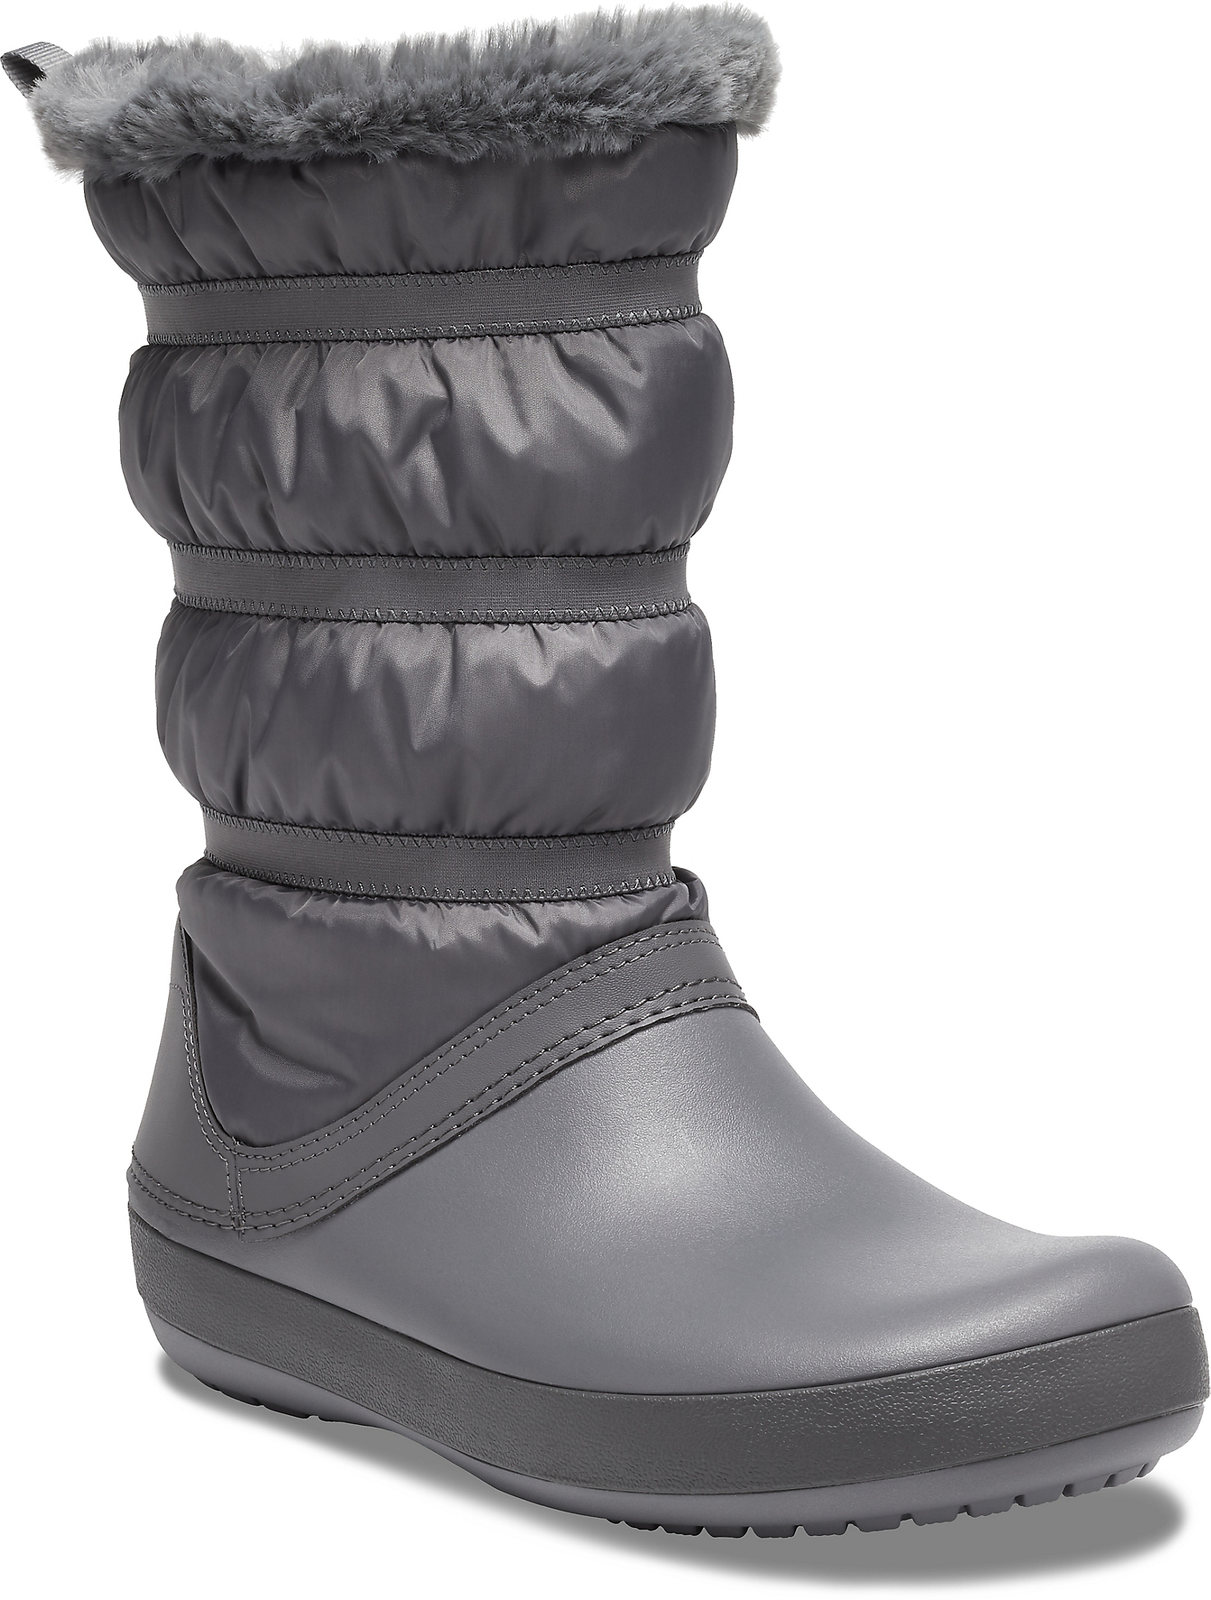 Crocs szare śniegowce Crocband Winter Boot Charcoal